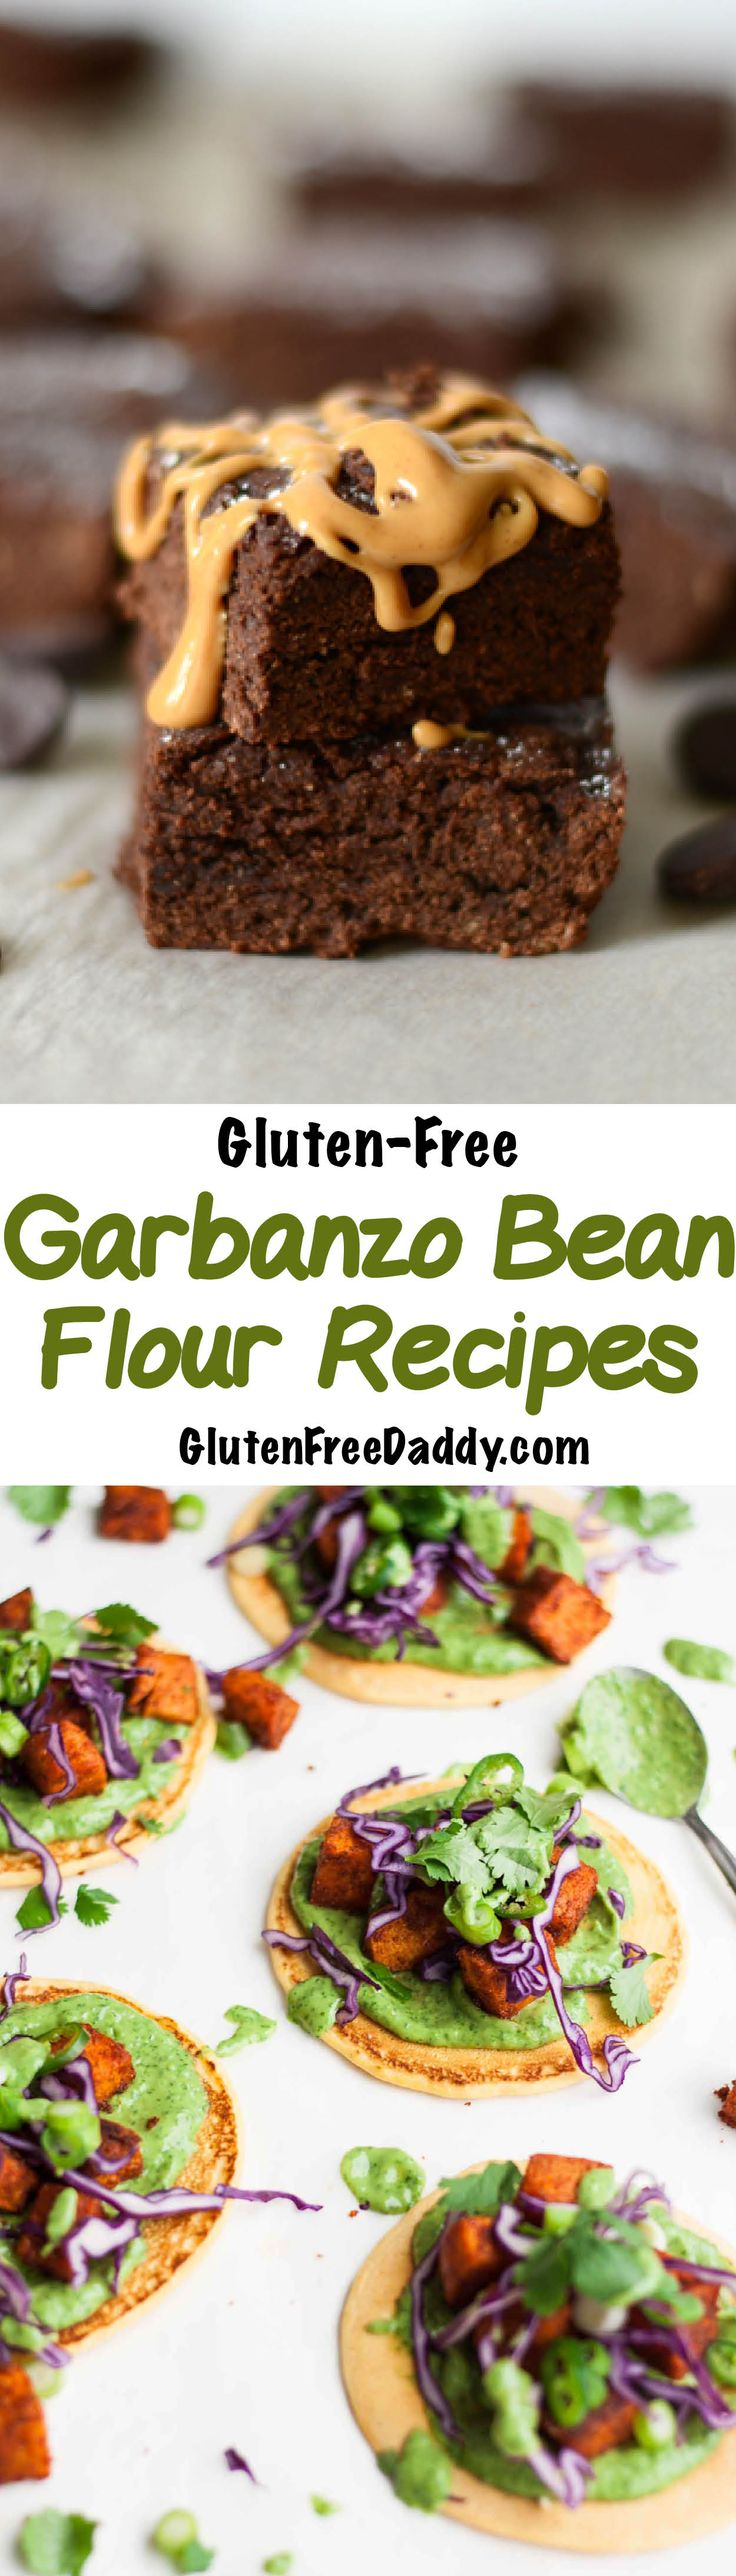 25 of the Best Gluten-Free Garbanzo Bean Flour Recipes. I love how garbanzo bean flour is a good source of protein and is naturally gluten-free and has a nutty, golden flavor.